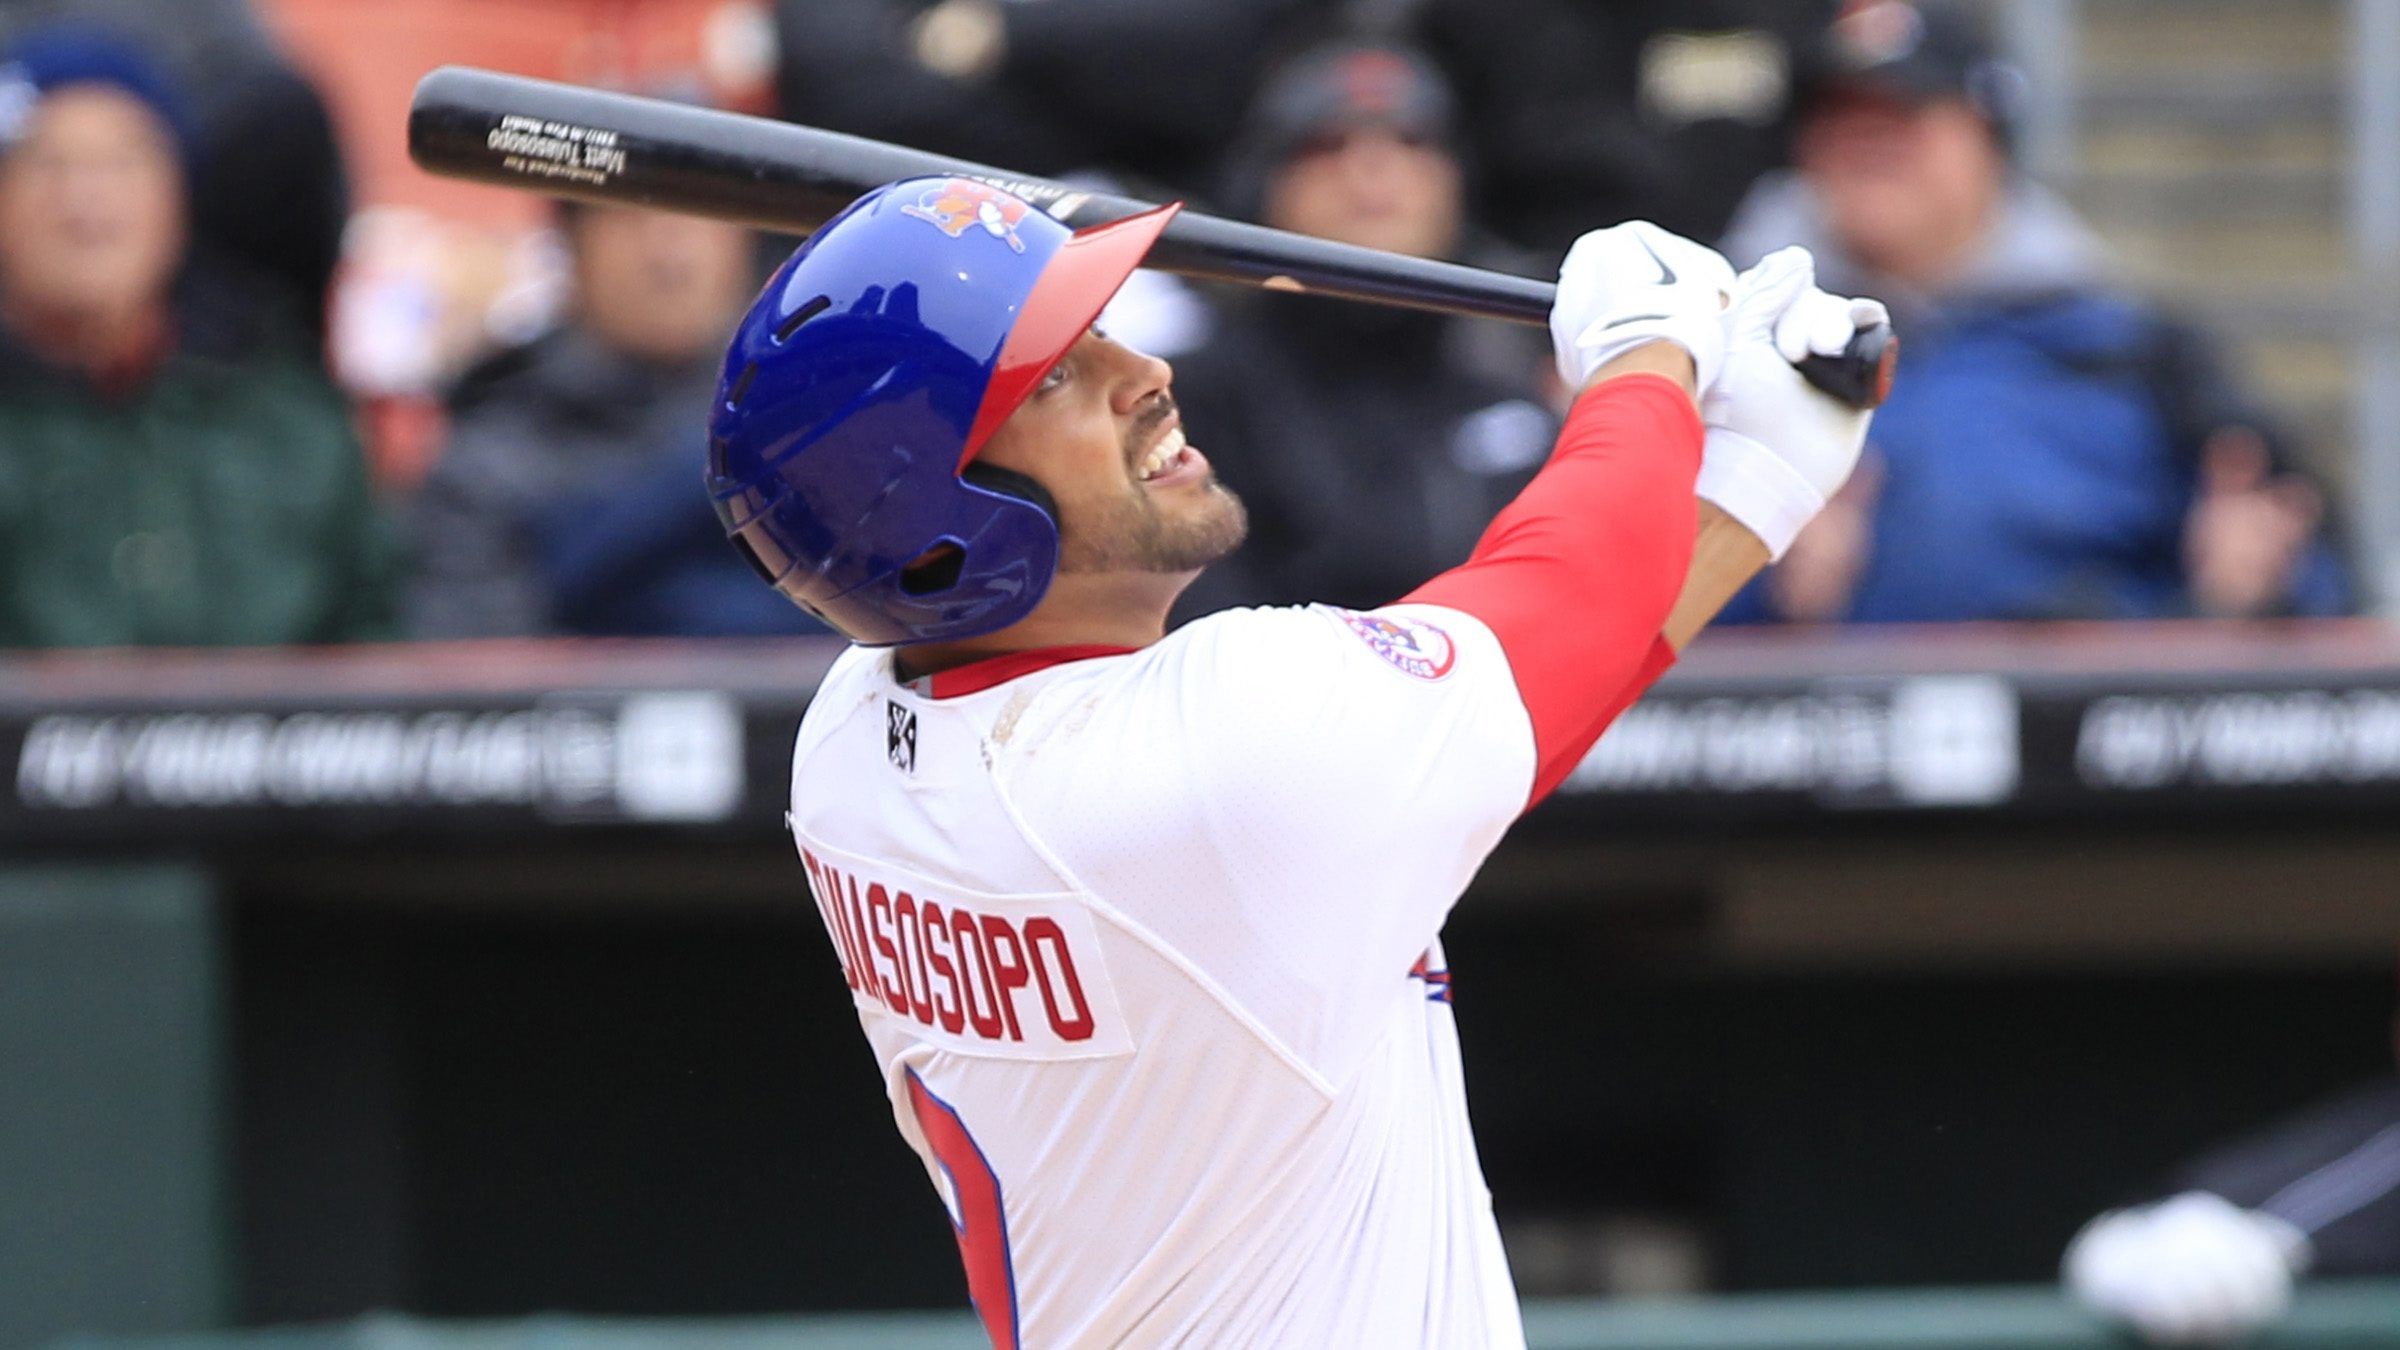 Buffalo Bisons Matt Tuiasosopo gets a first inning base hit against the Rochester Red Wings during opening day at Coca-Cola Field.